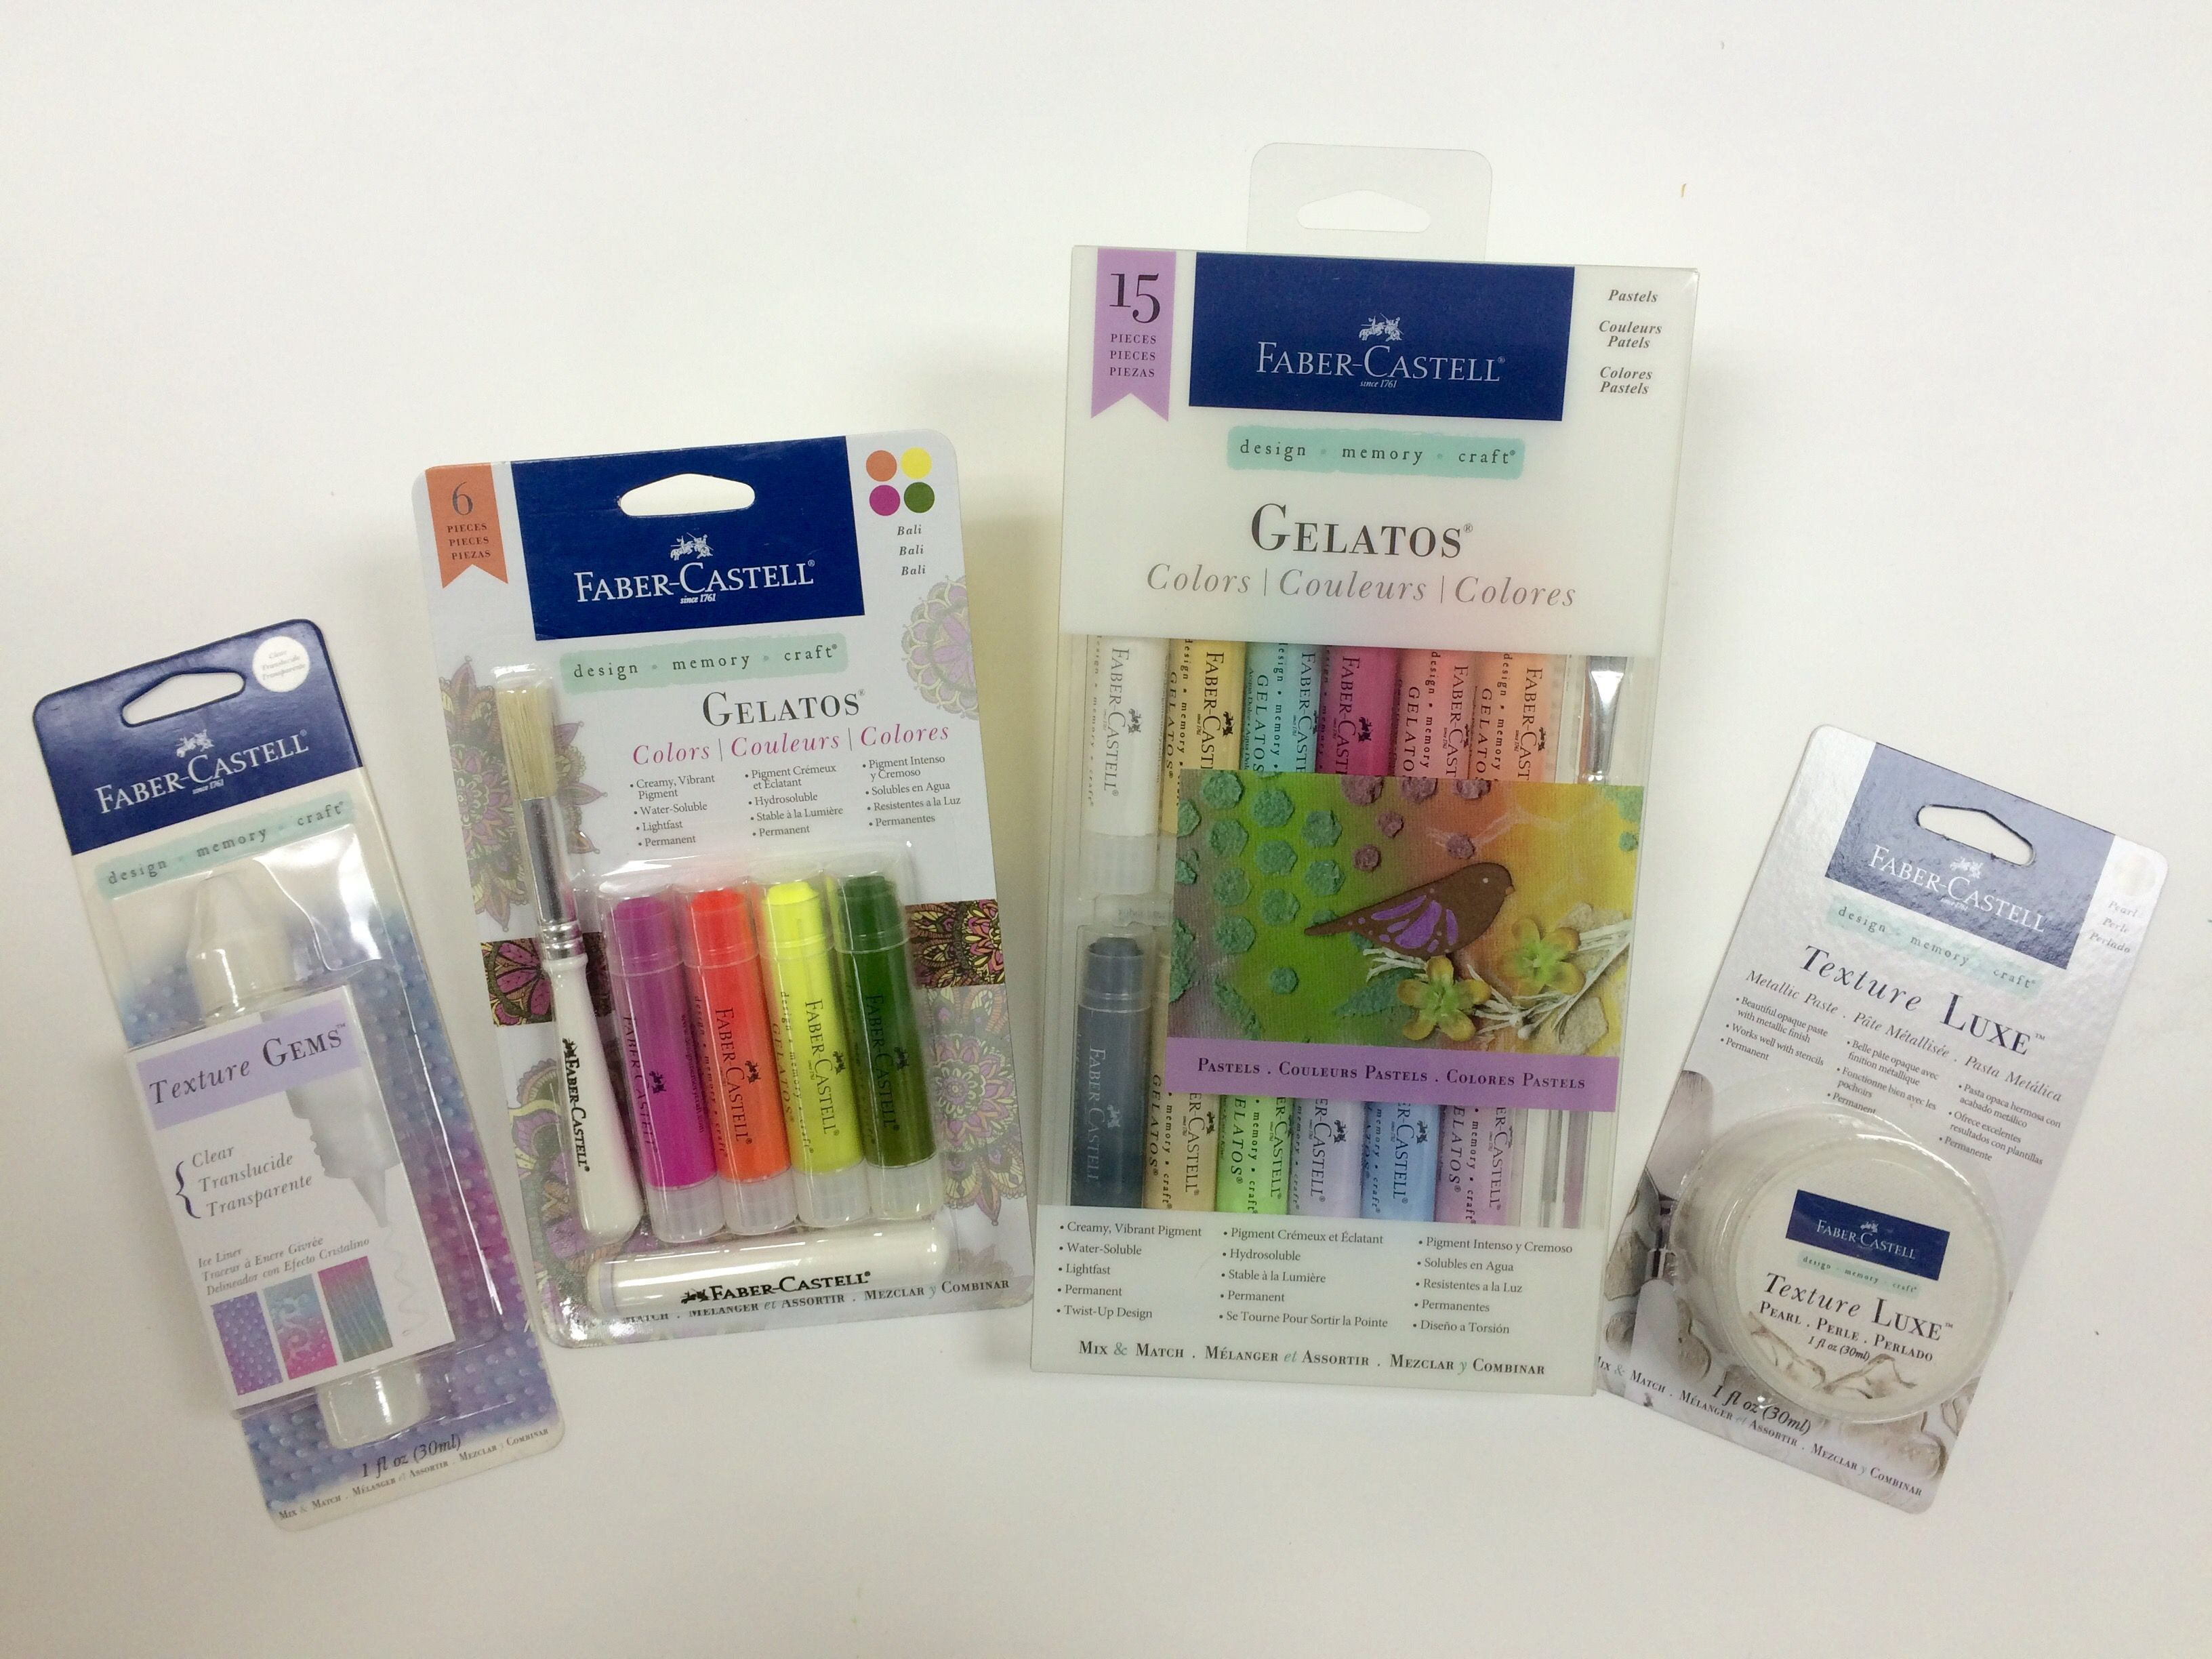 Friday Giveaway from Faber-Castell Design Memory Craft®   Craft Test Dummies